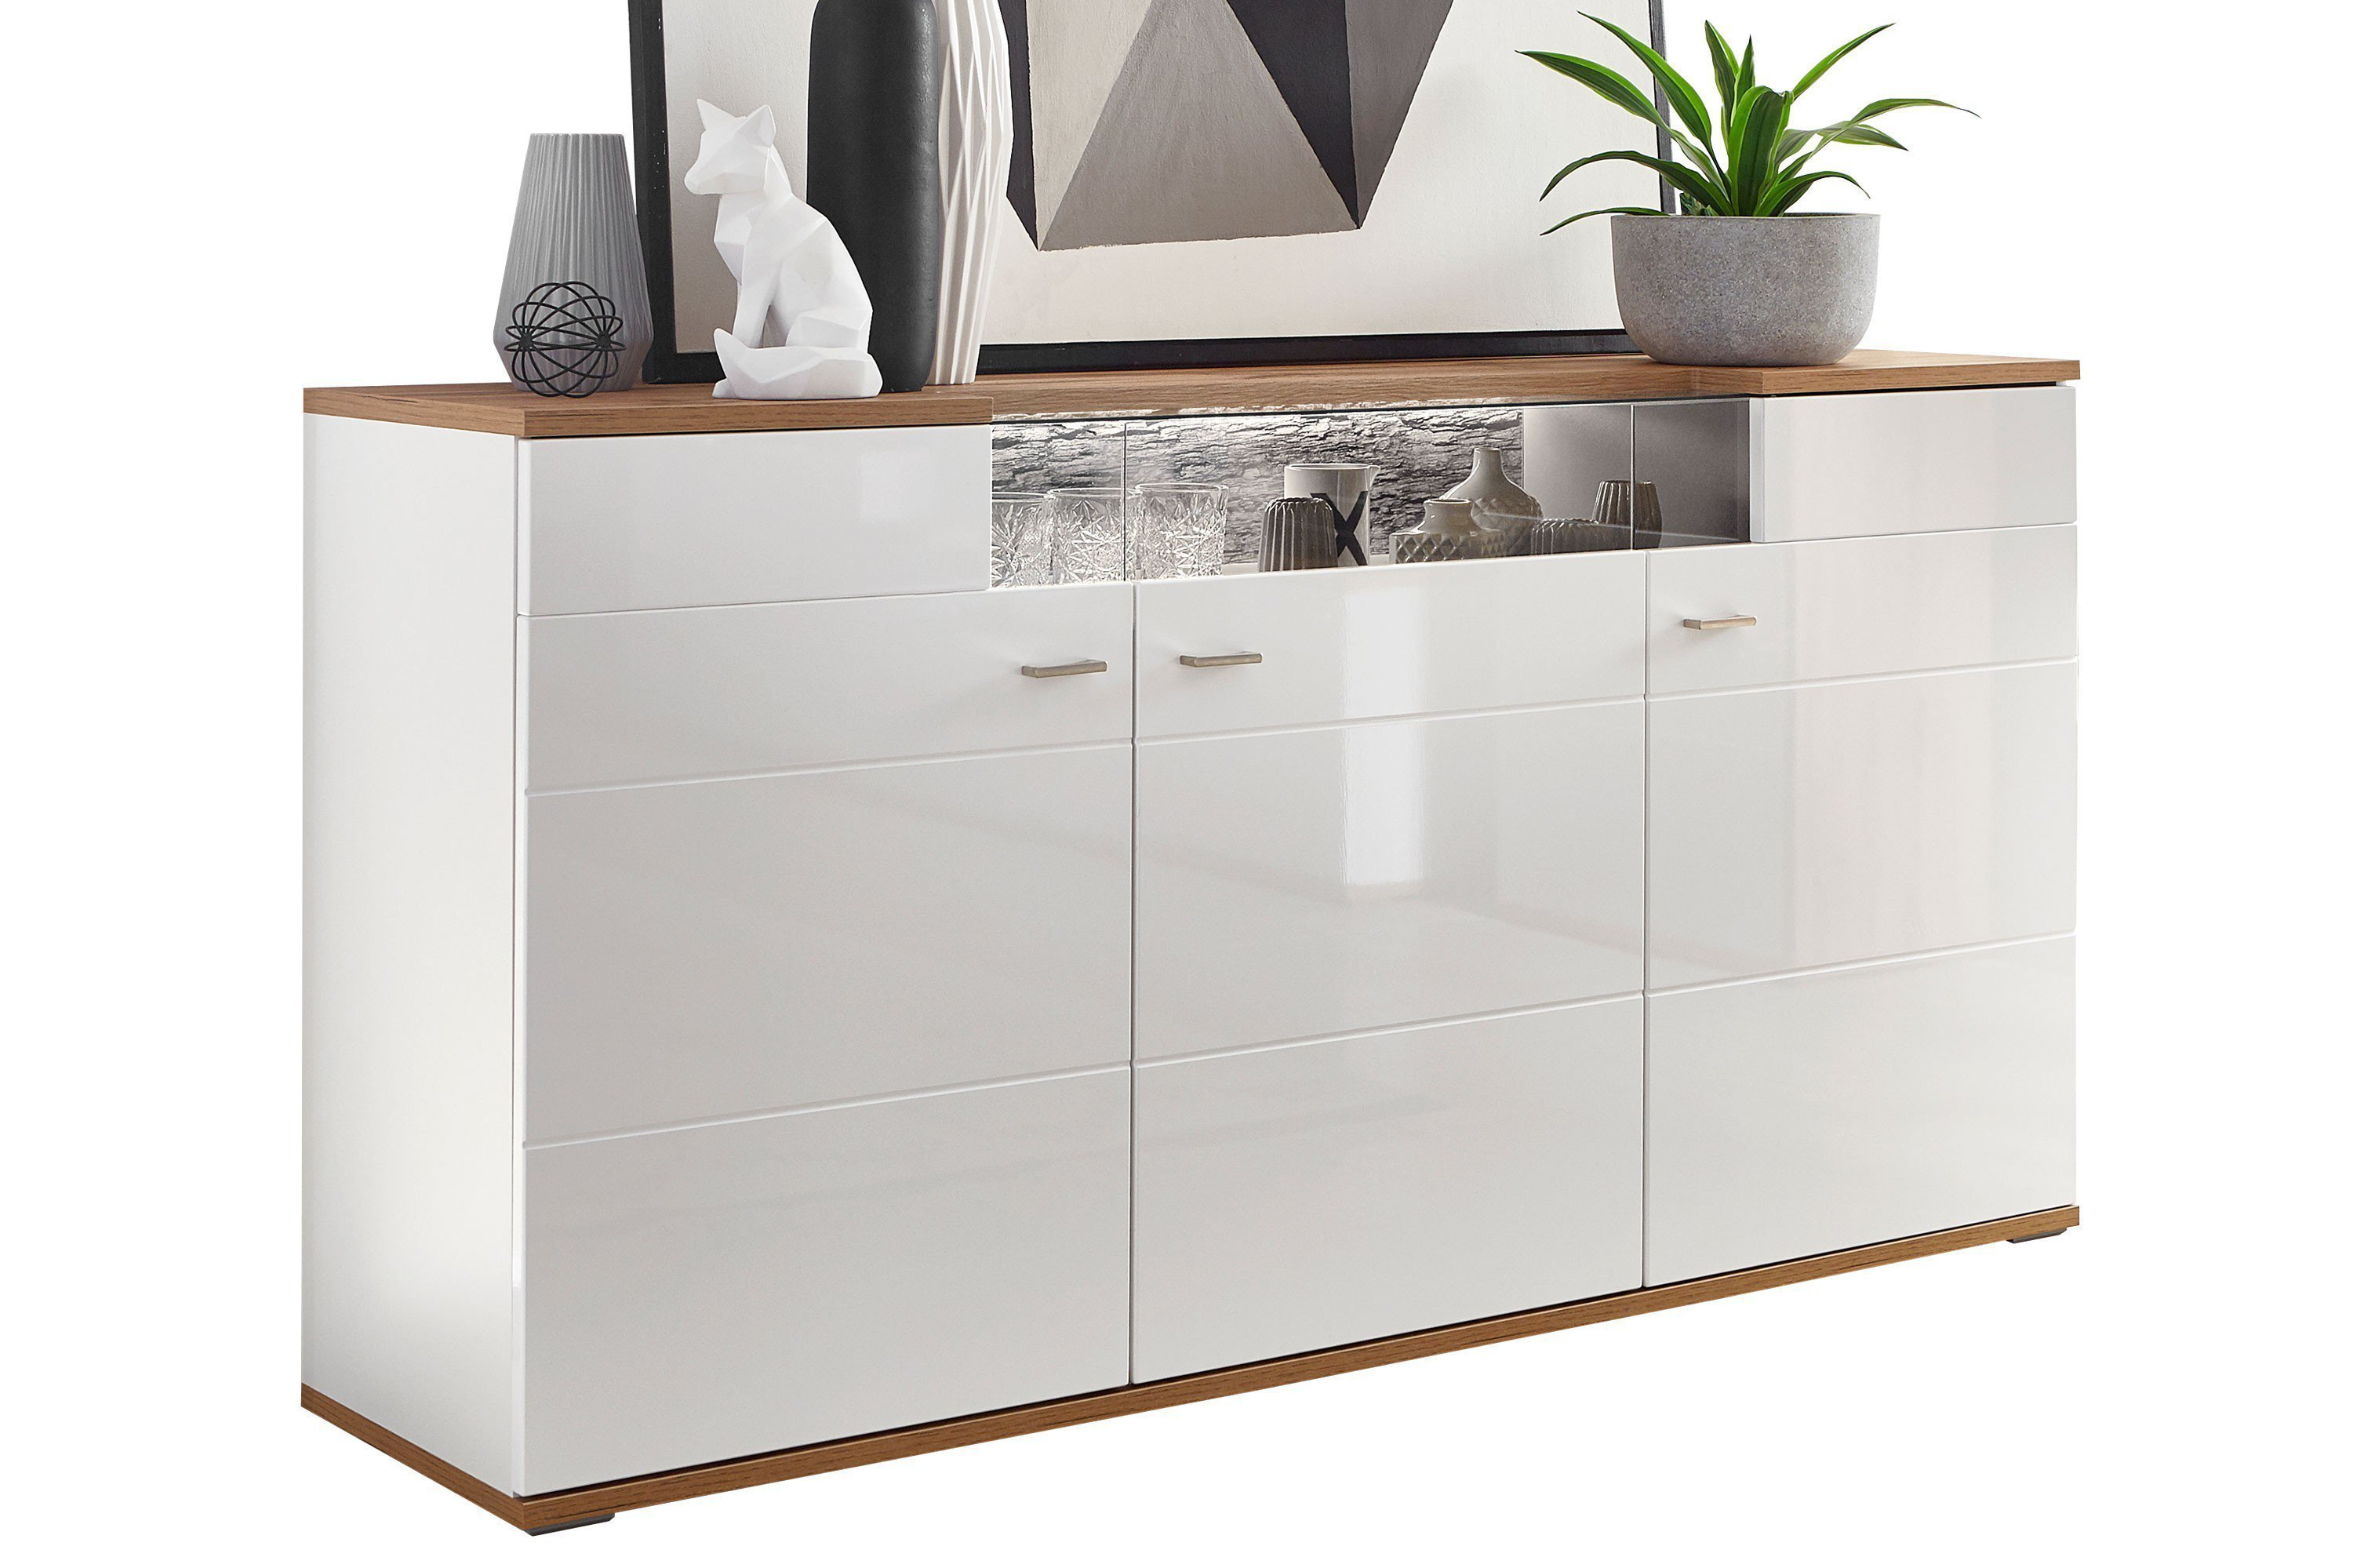 Latest Free Timo Von Ideal Mbel Sideboard Wei Wotan Eiche With Sideboard  Weiss With Usm Haller Sideboard Wei.